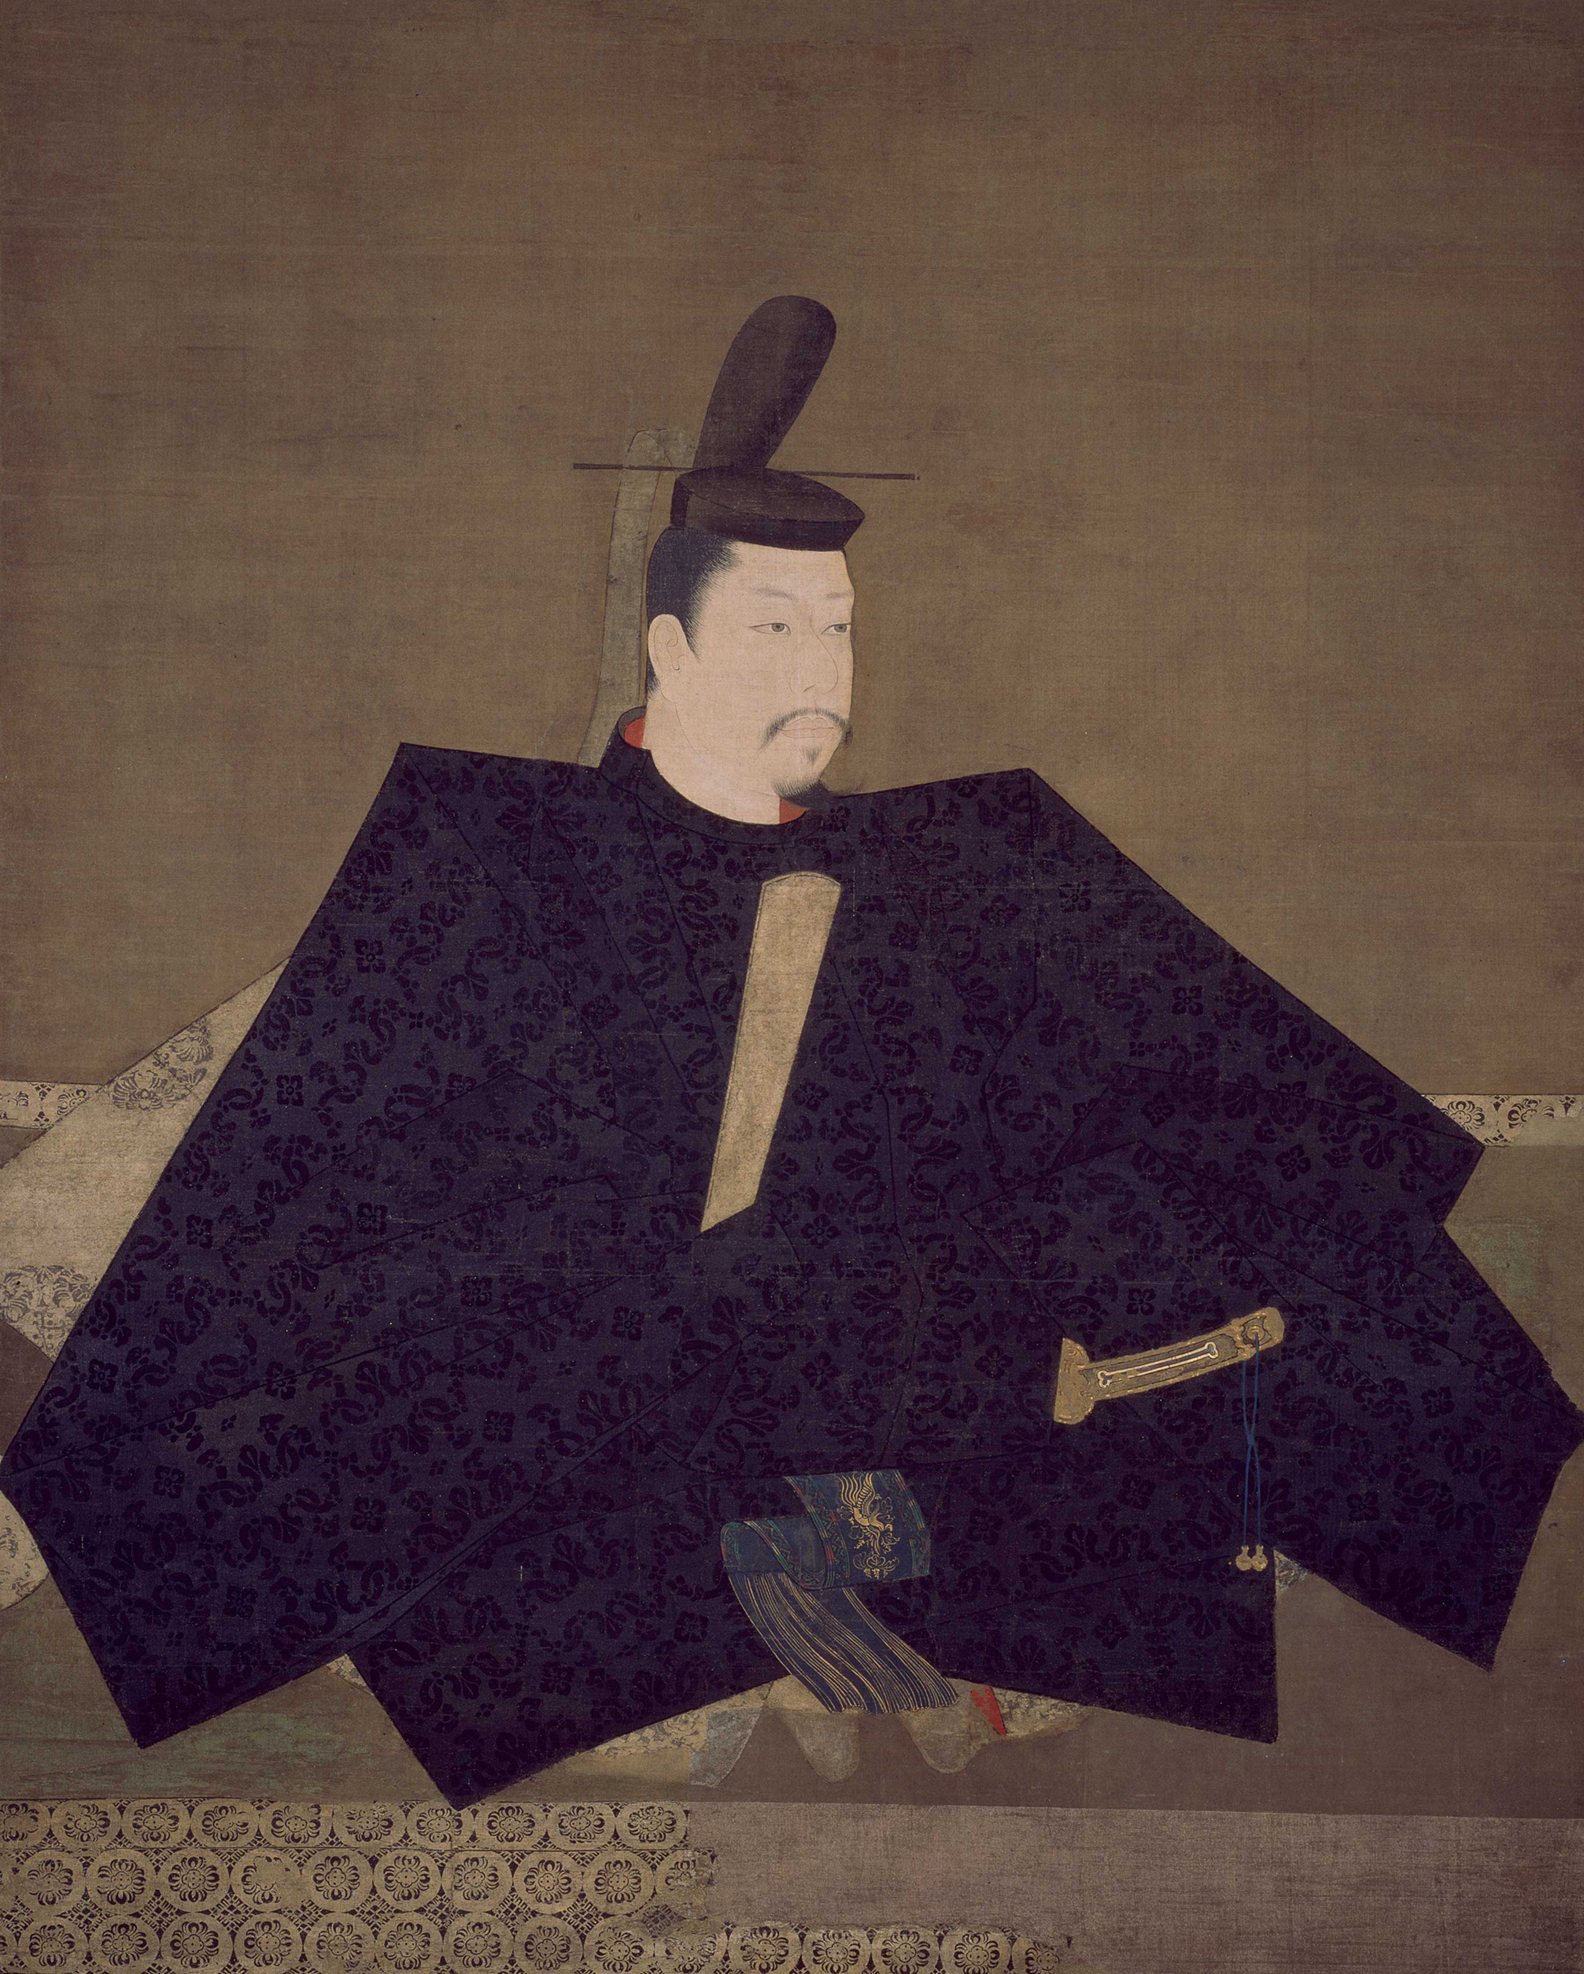 https://upload.wikimedia.org/wikipedia/commons/7/76/Minamoto_no_Yoritomo.jpg